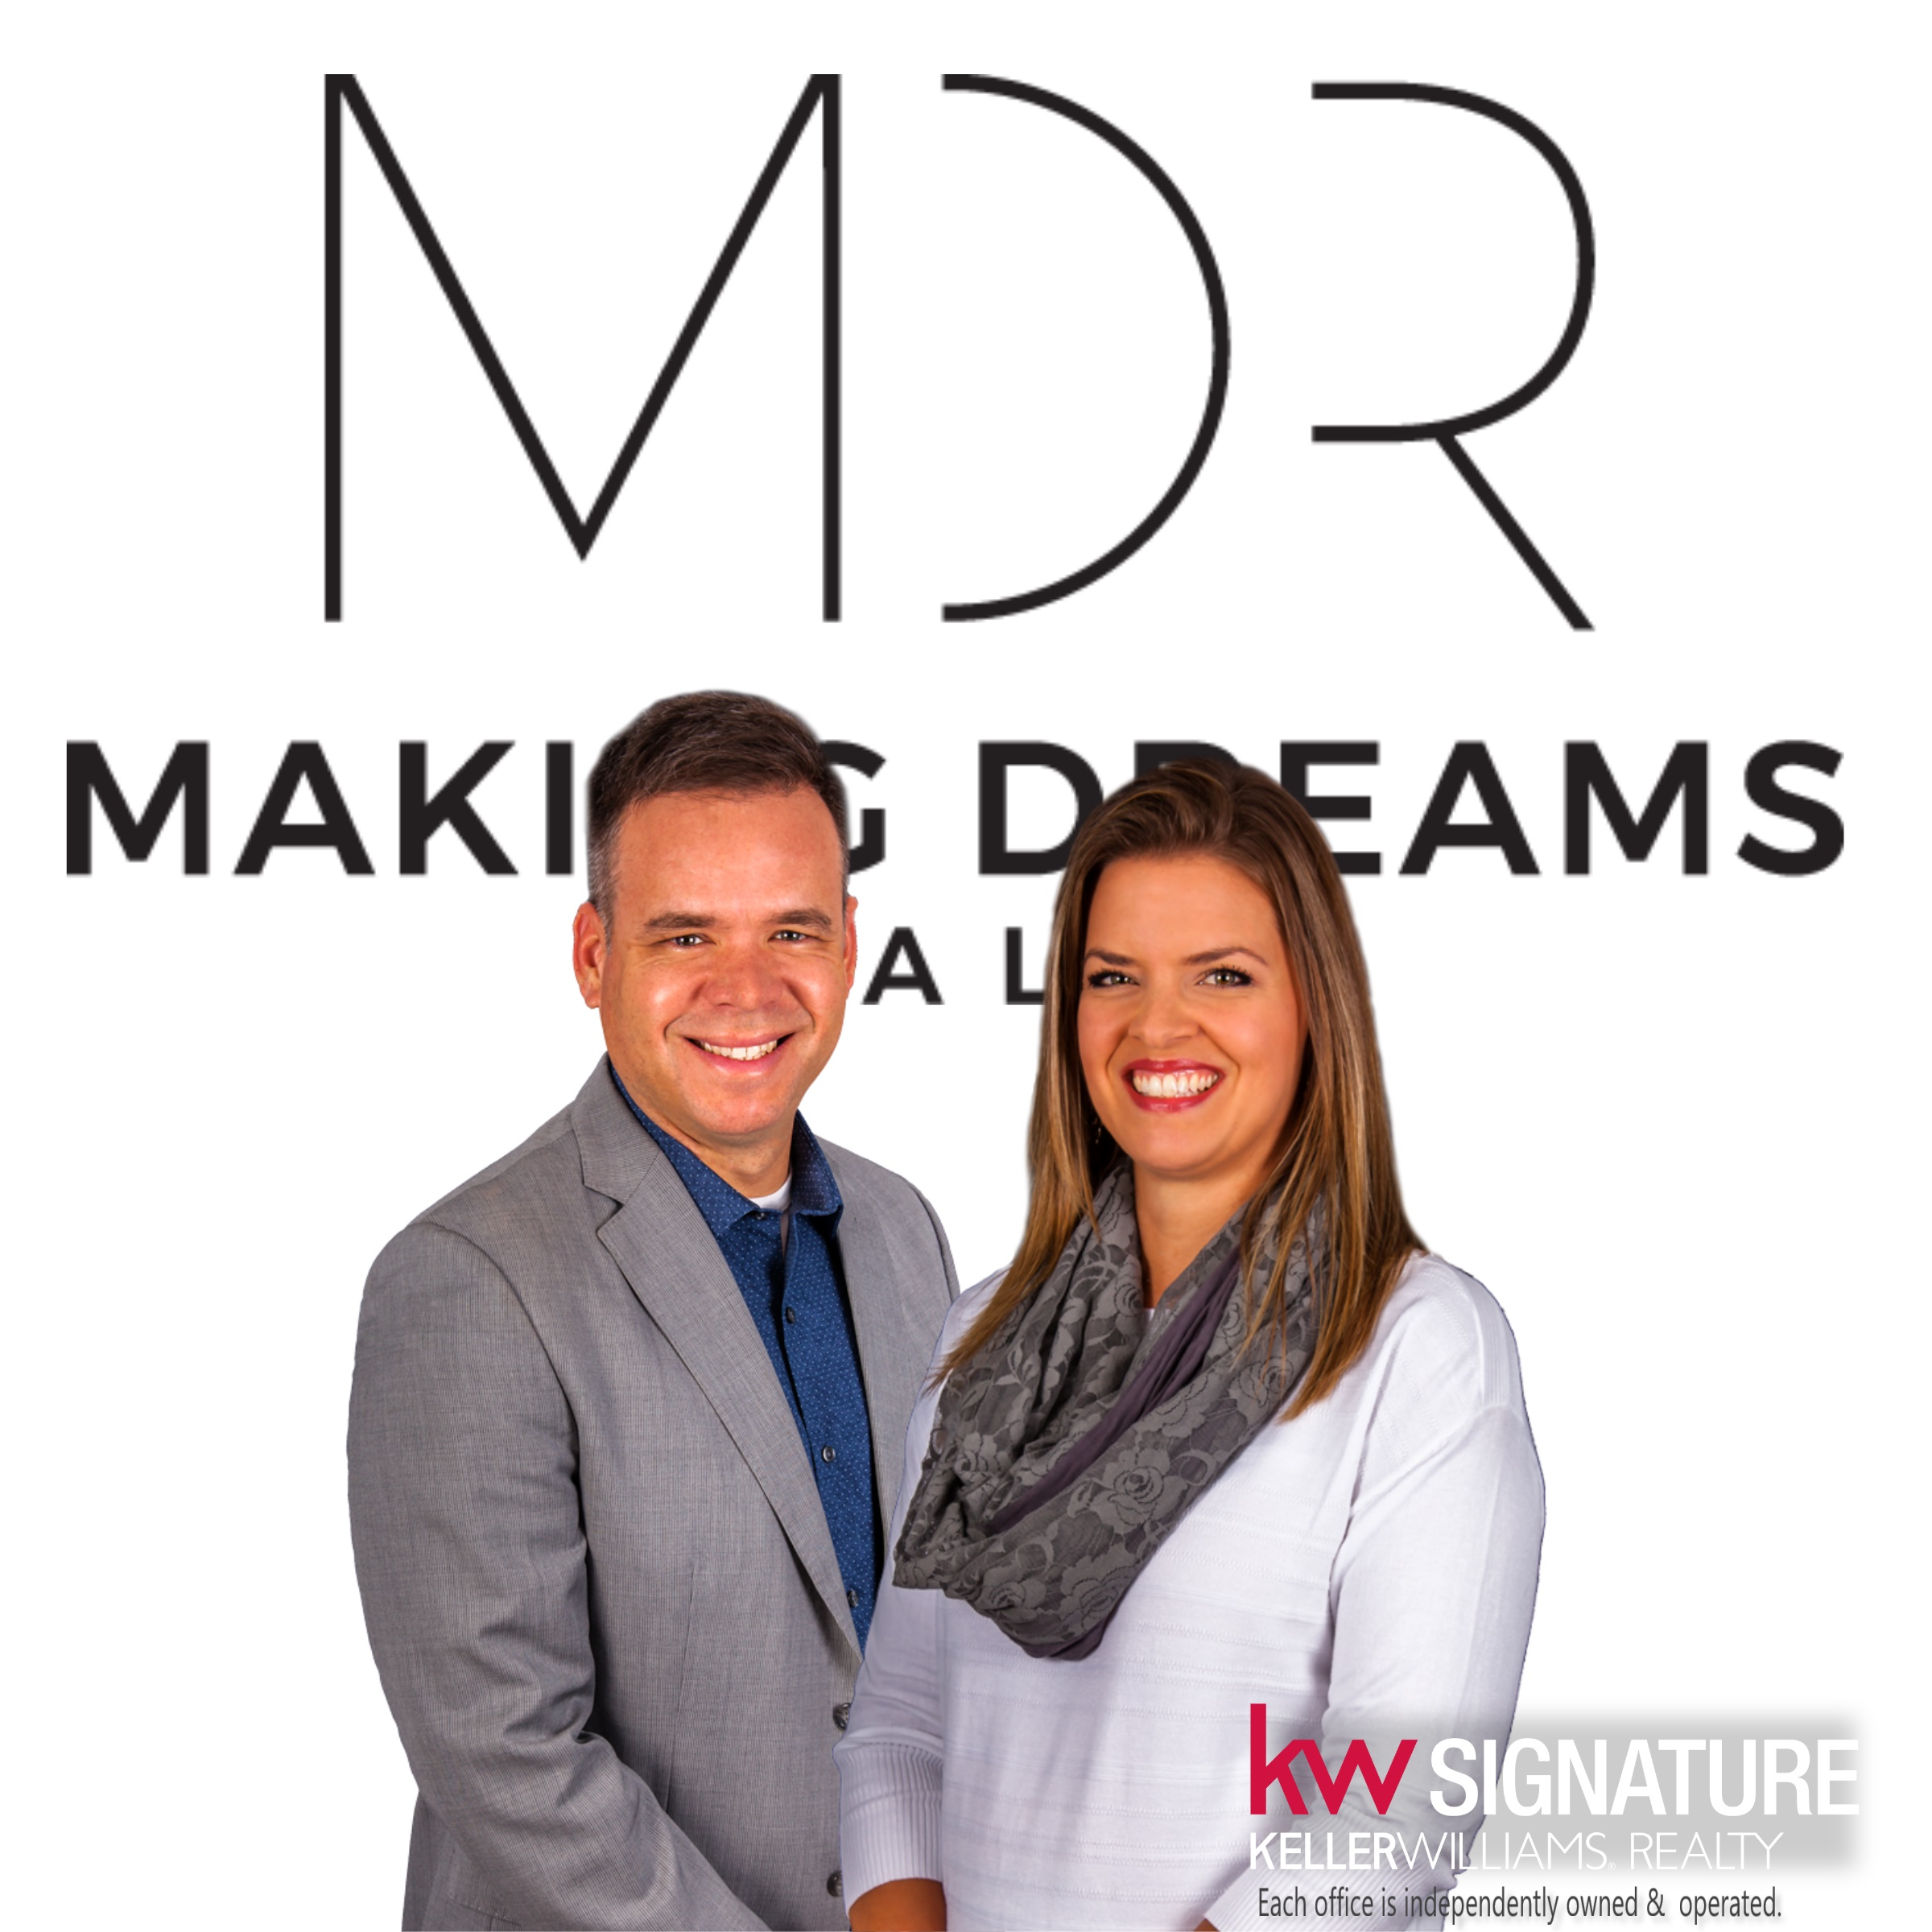 MAKING DREAMS Realty, Top Real Estate Agency Southern Wisconsin